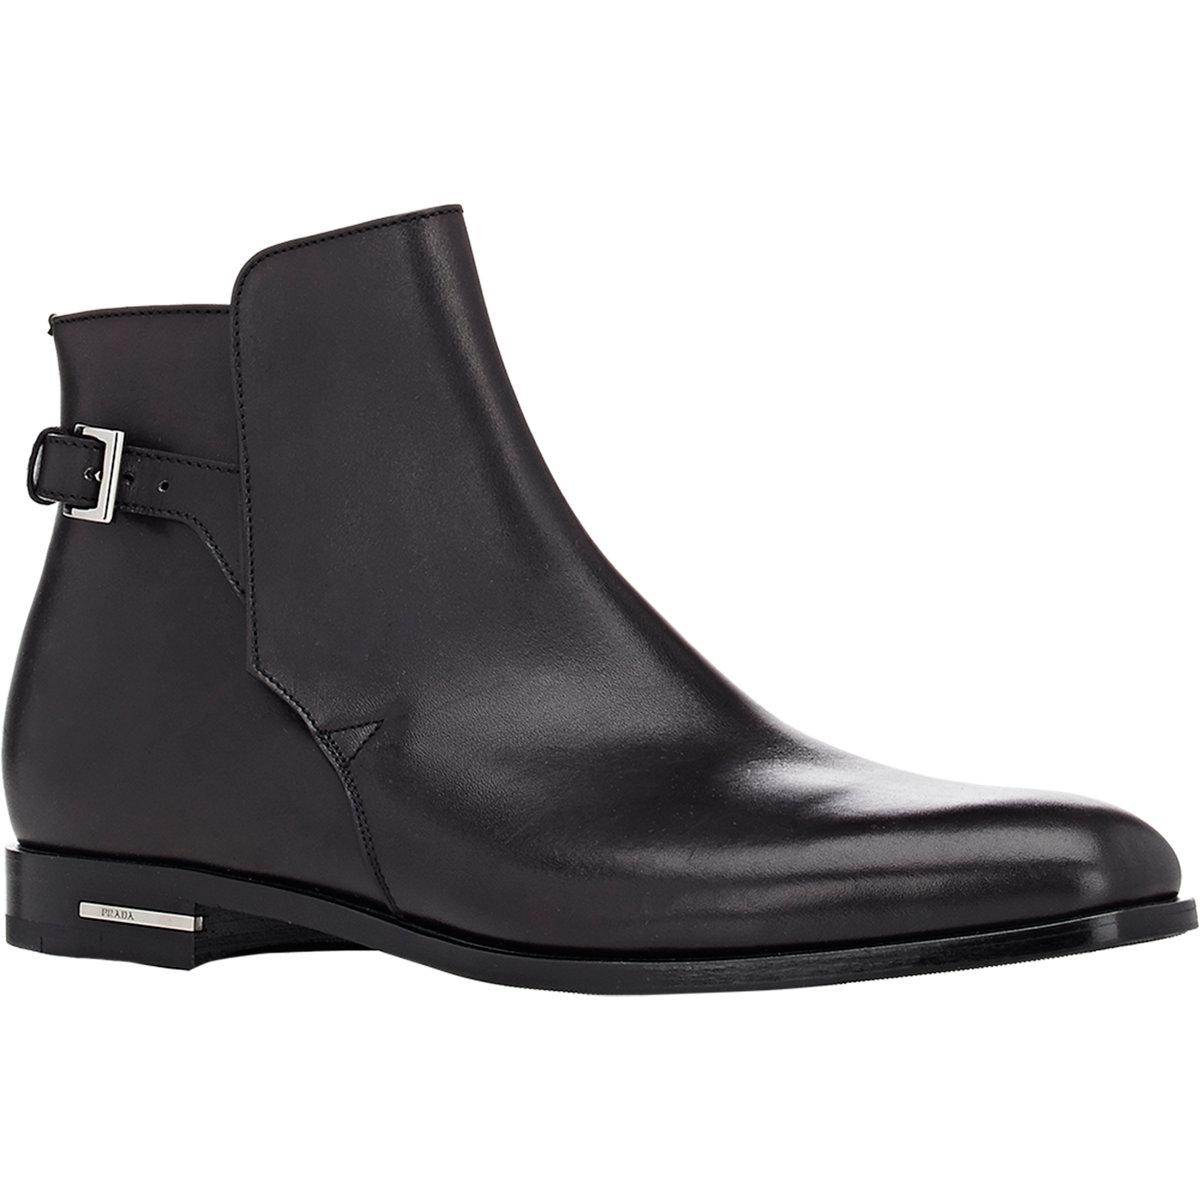 exceptional range of styles hot-selling authentic super specials Buckle-Strap Ankle Boots